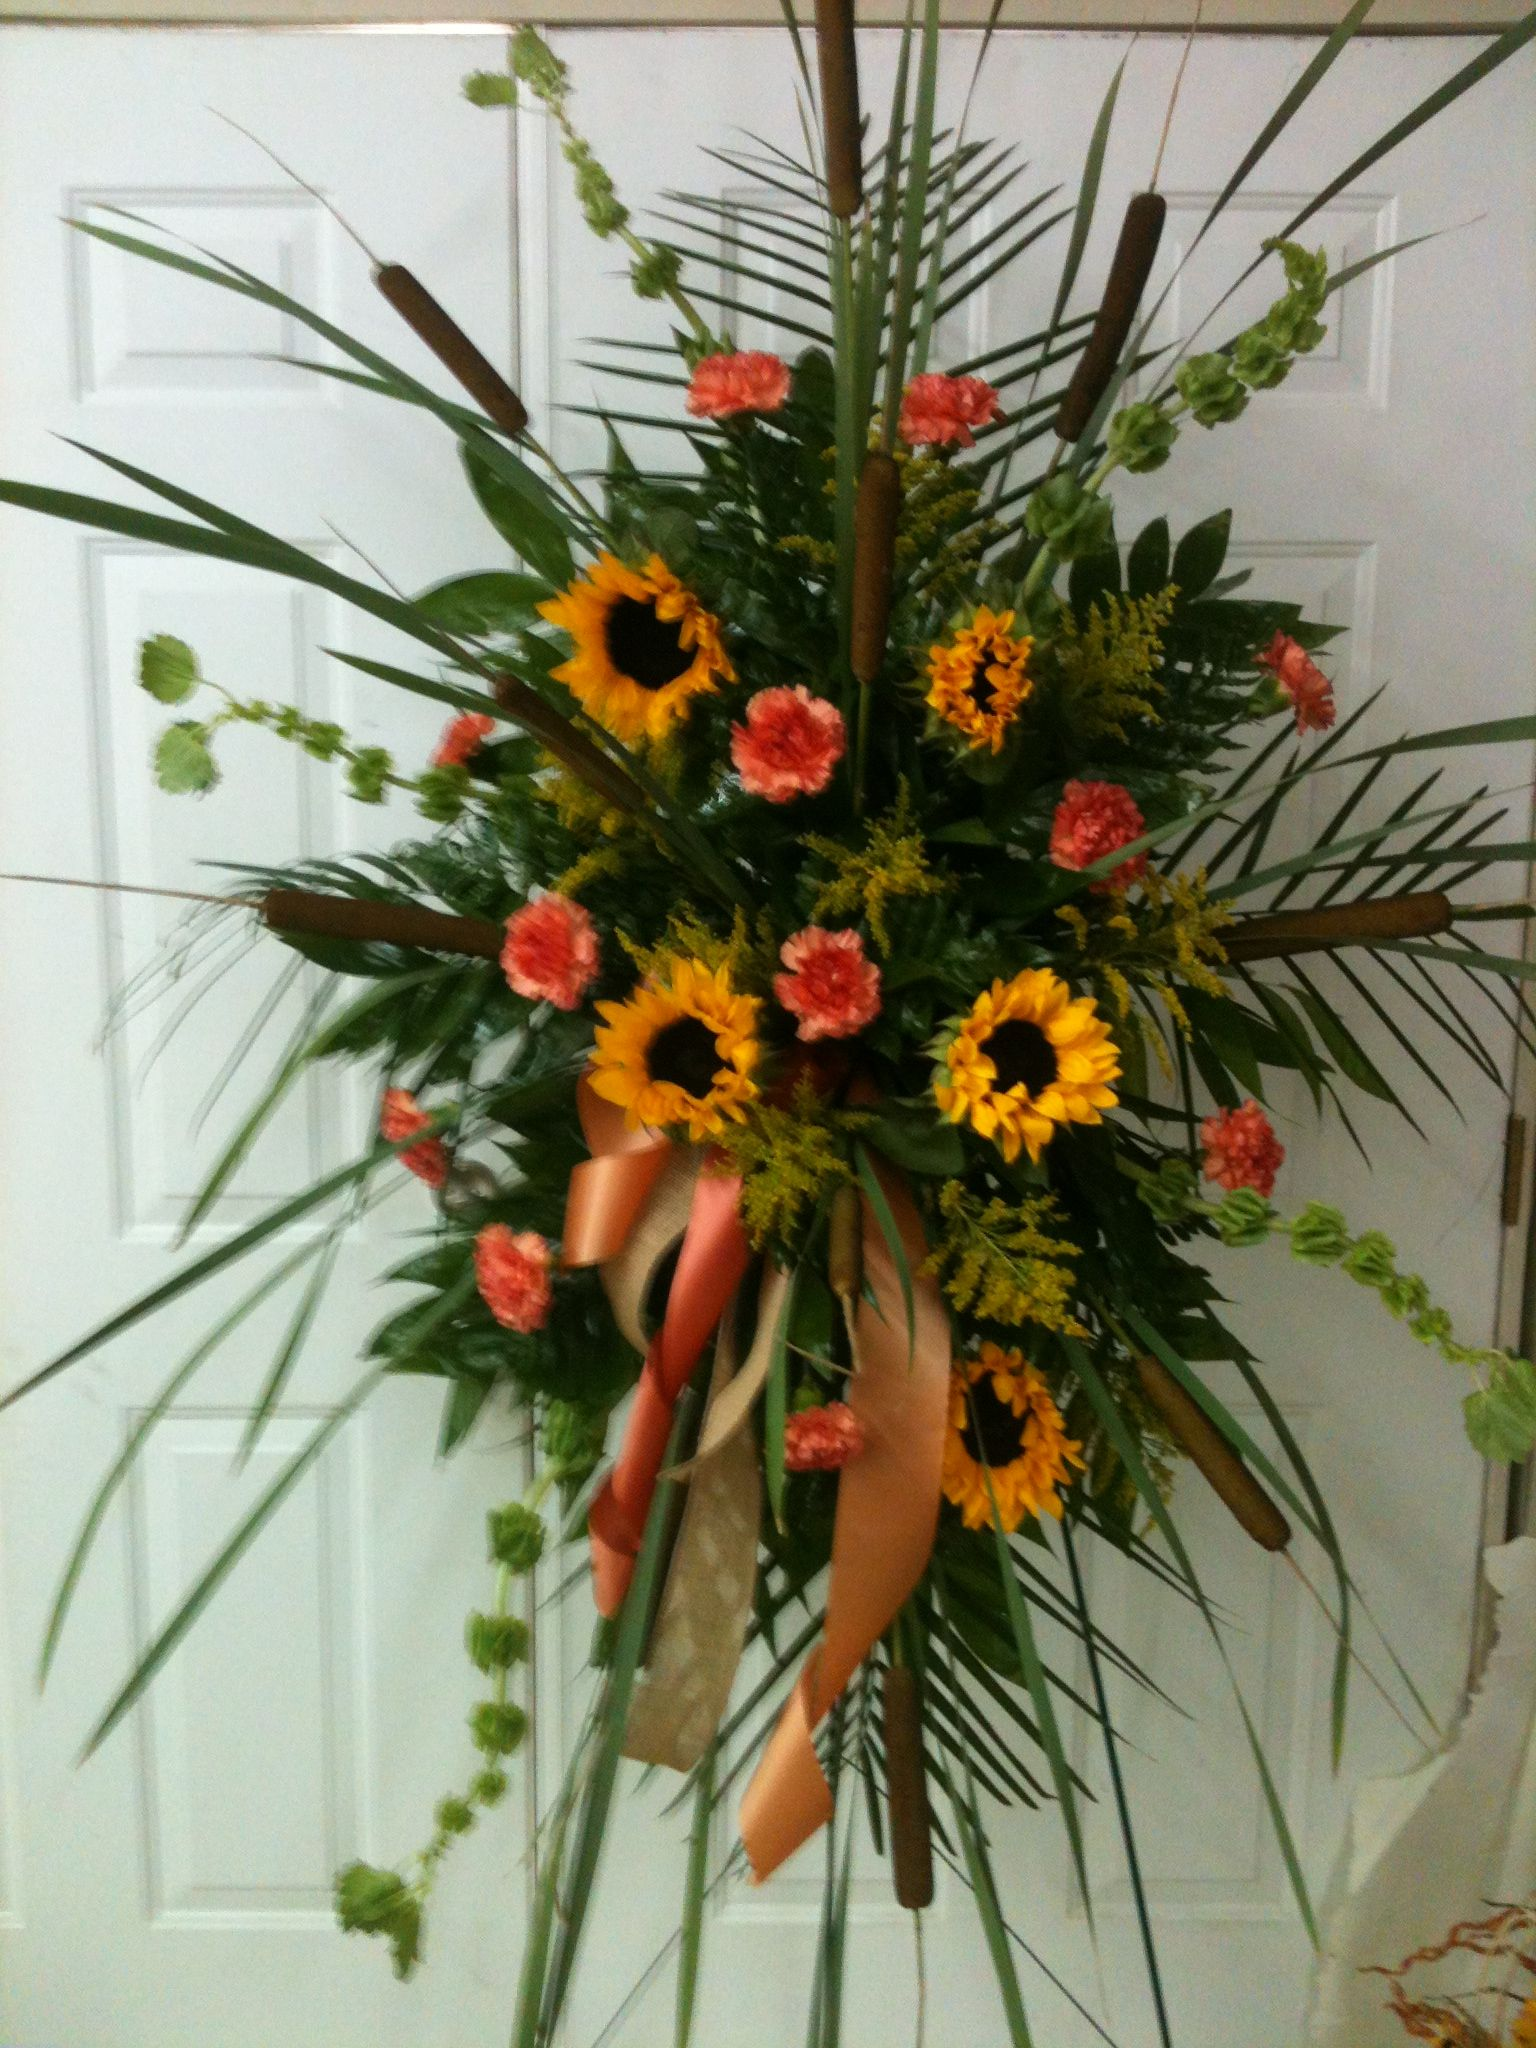 Funeral spray with cattails sunflowers orange carnations